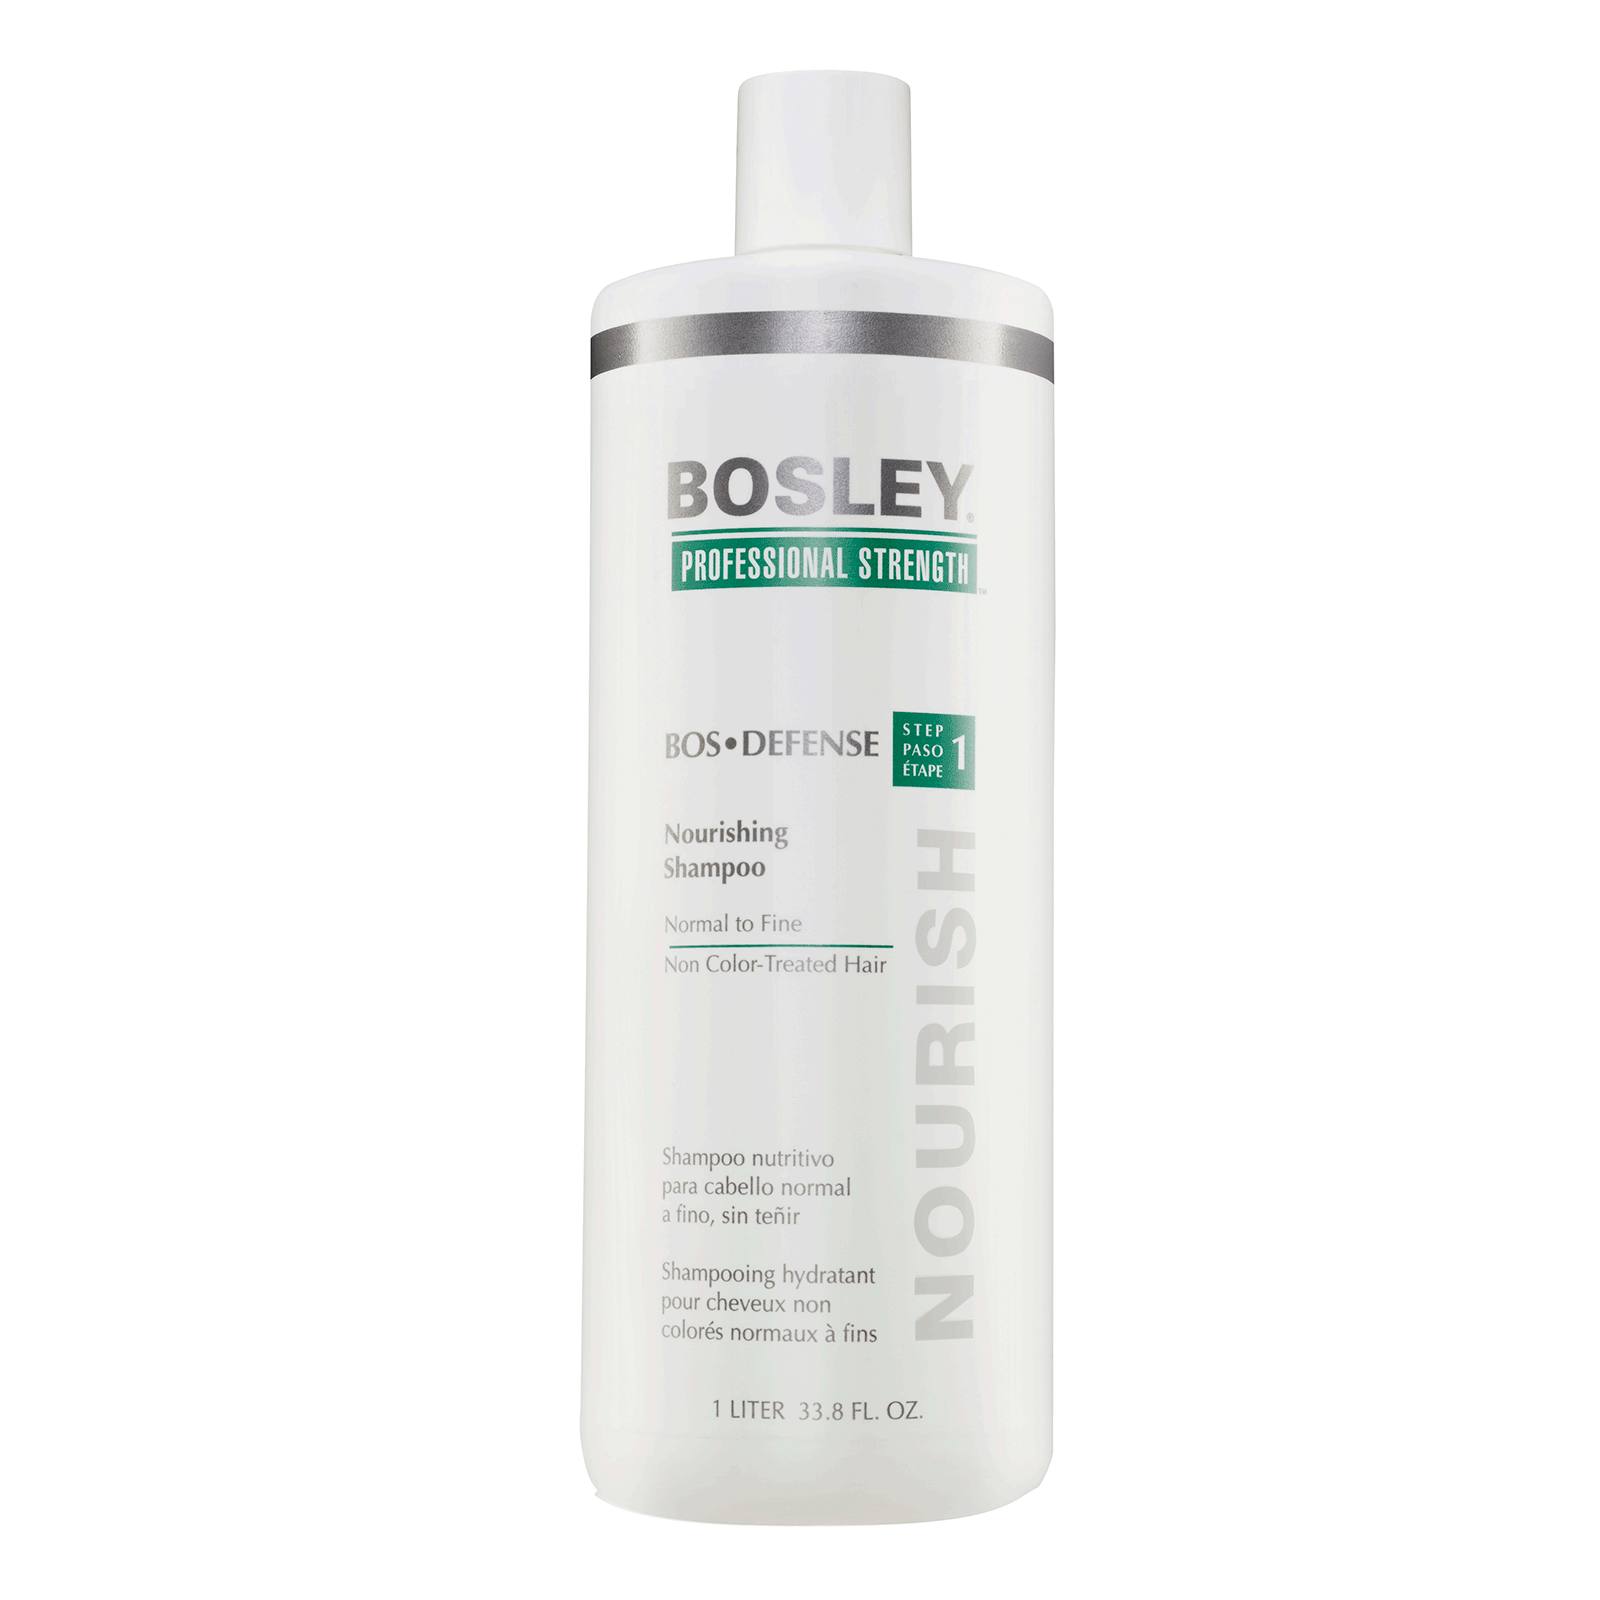 BosDefense Nourishing Shampoo for Non Color-Treated Hair